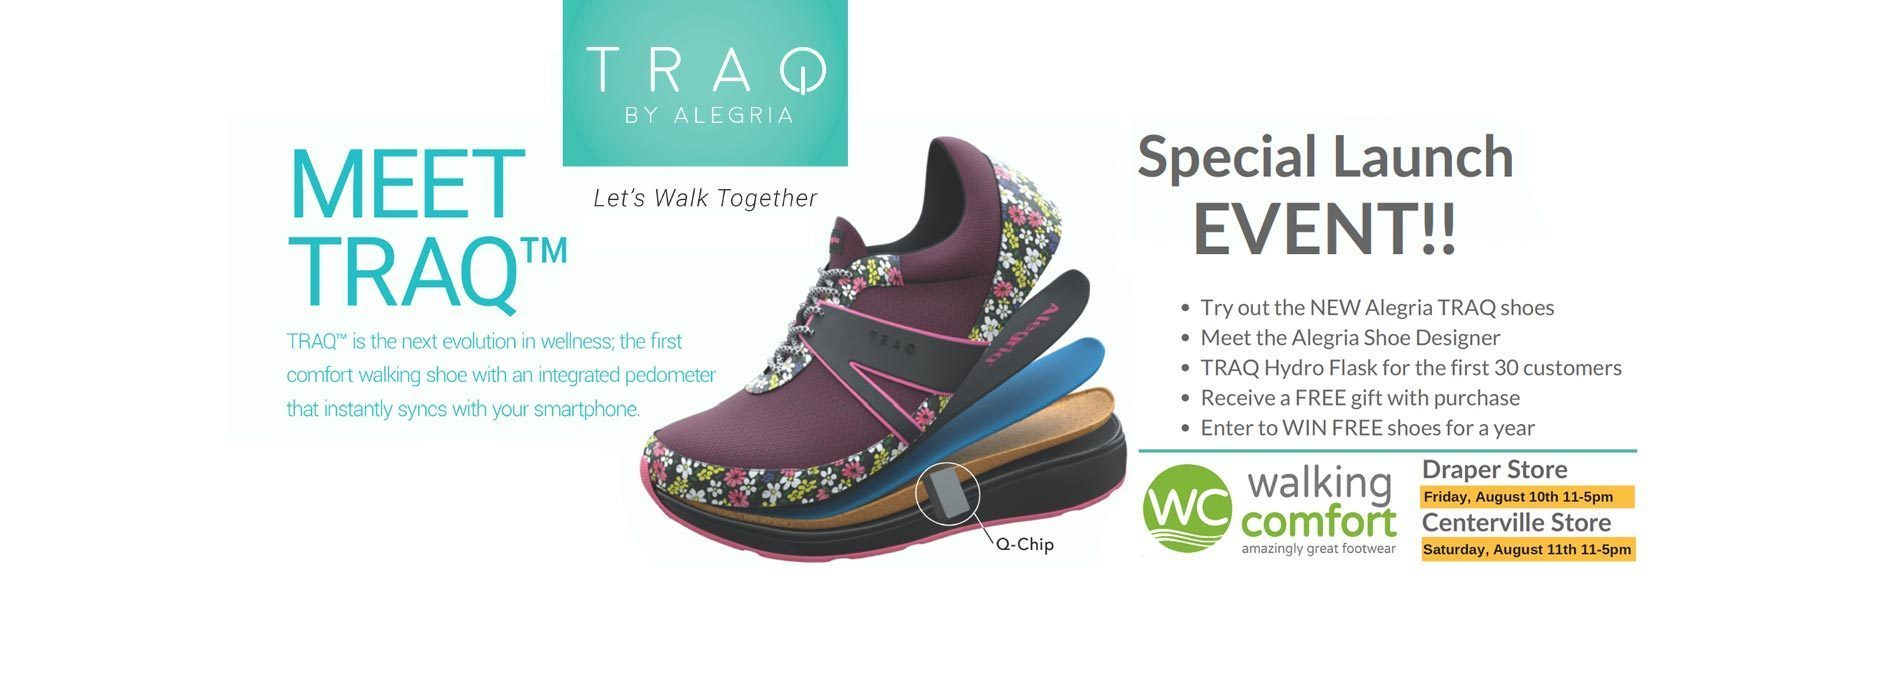 Alegria TRAQ Event at Walking Comfort